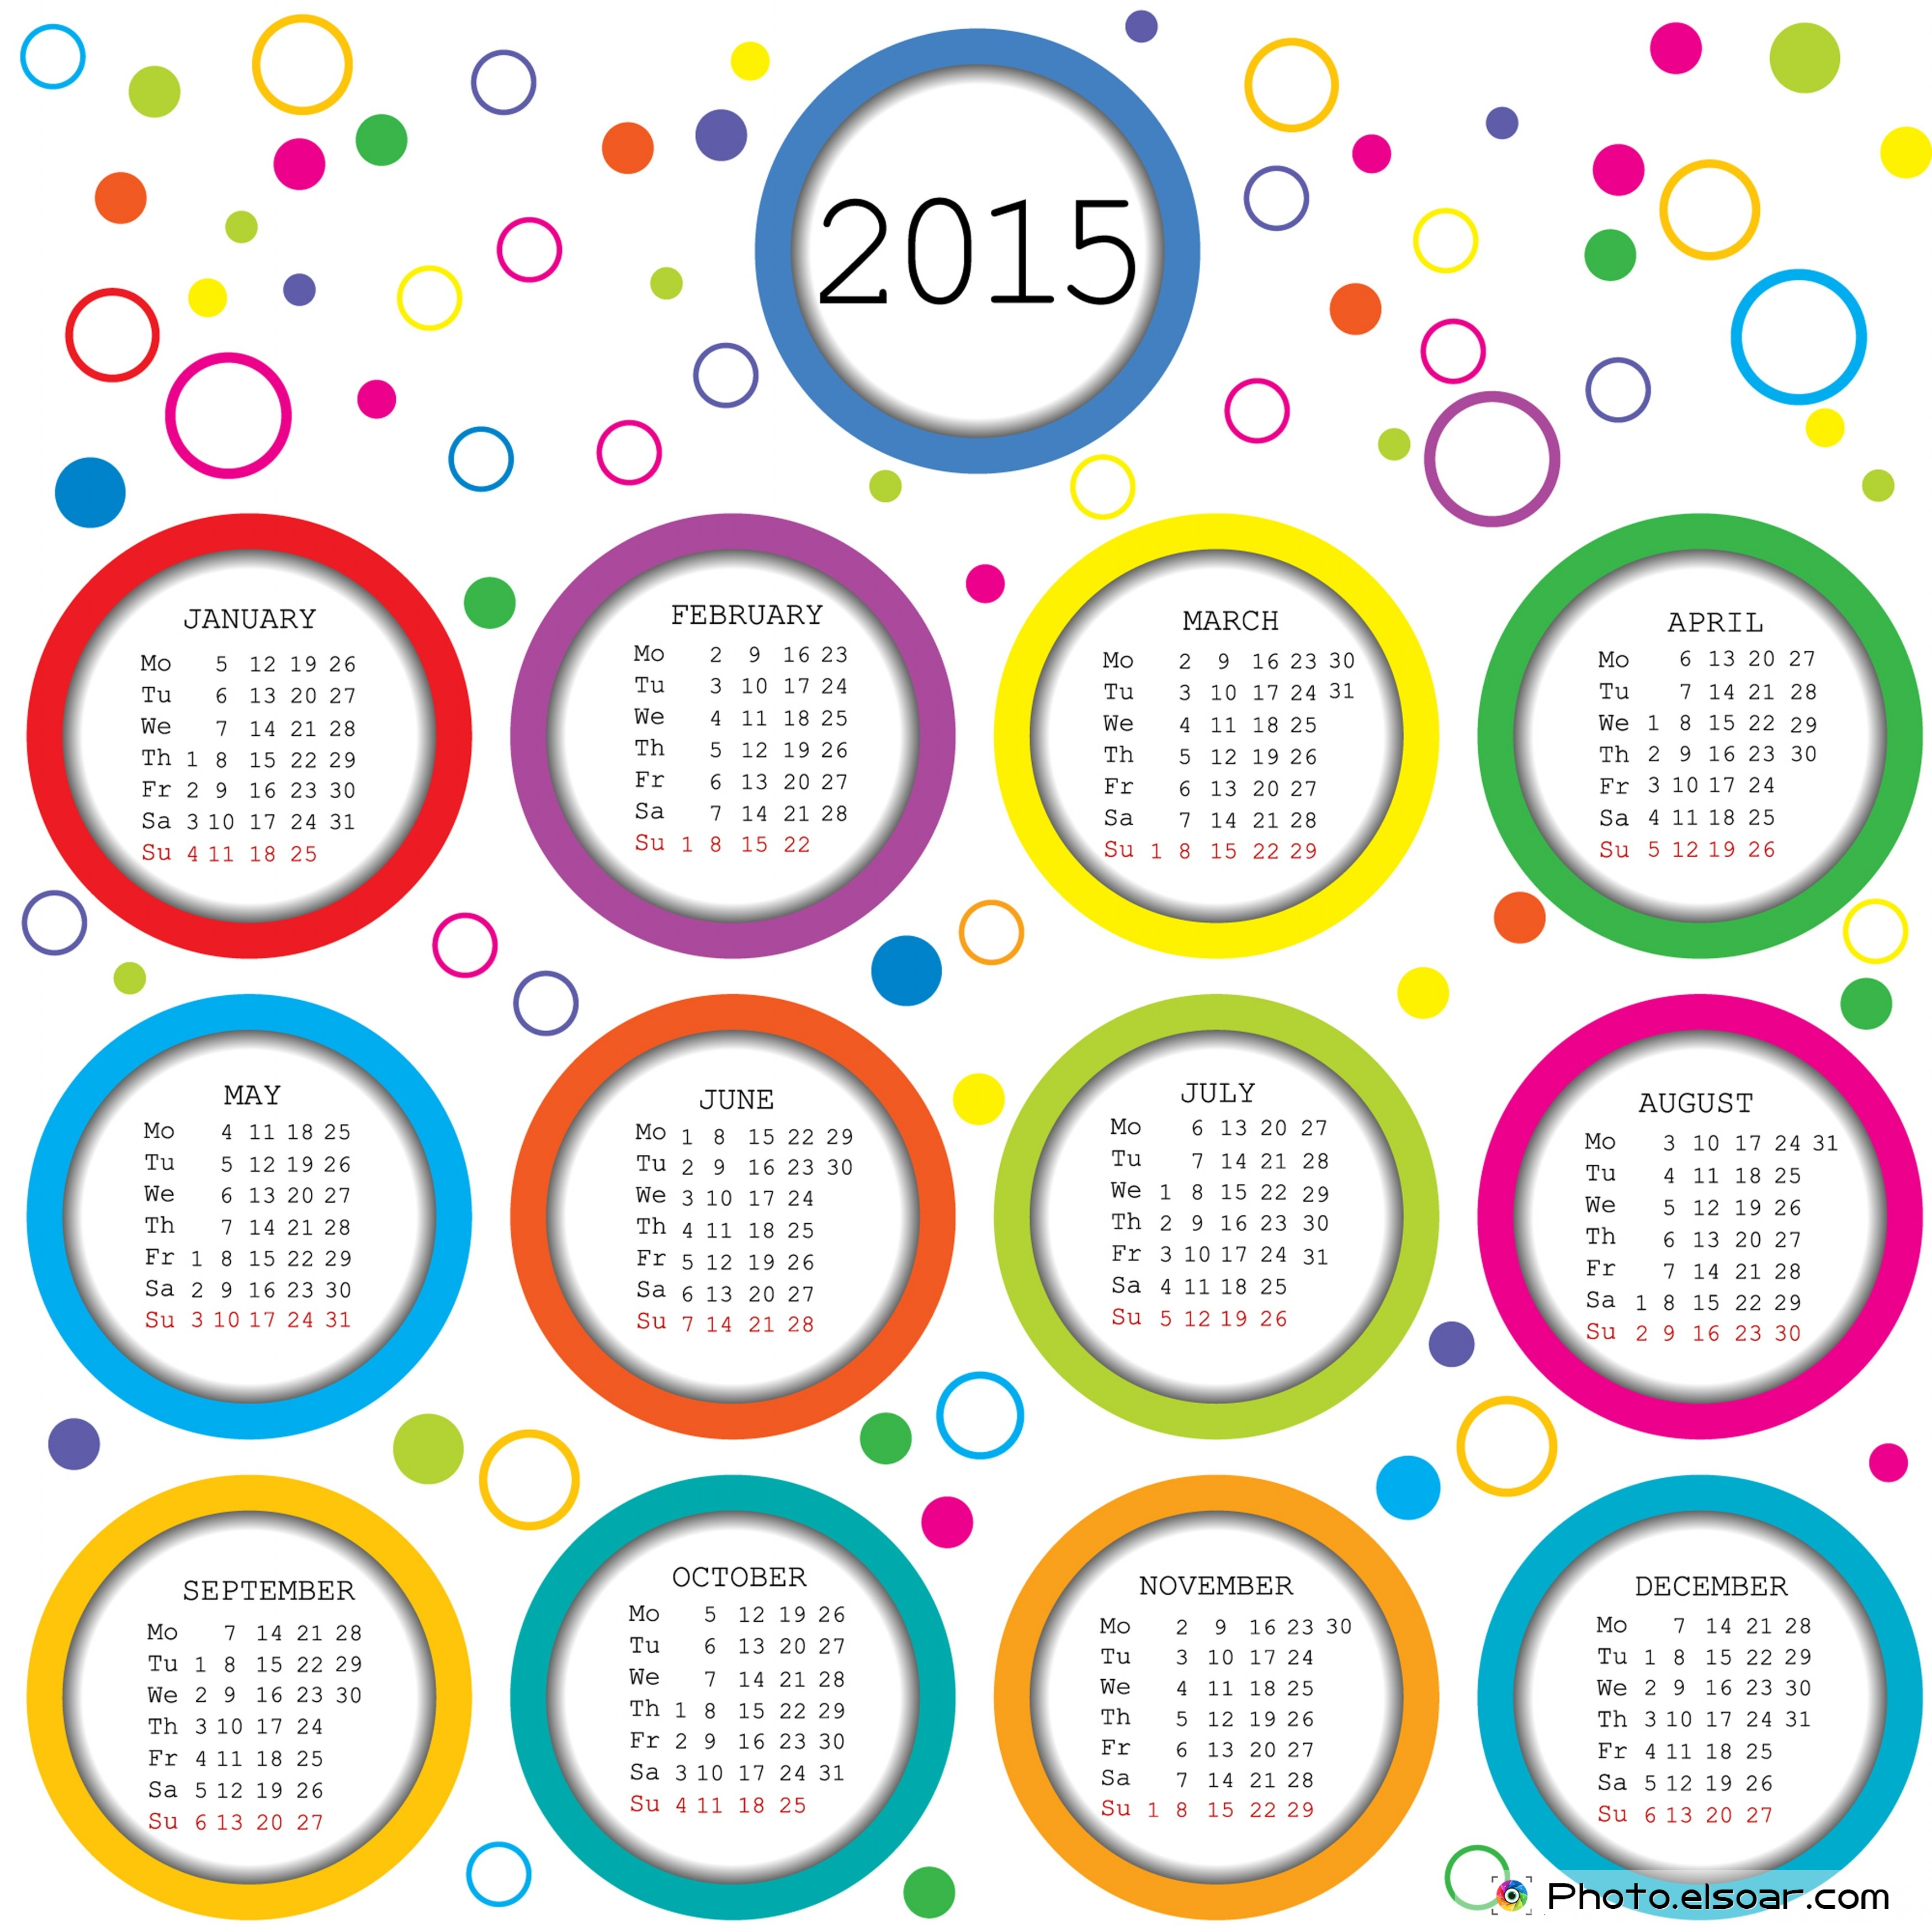 2015 Calendar Designs, With 25 Good Ideas • Elsoar